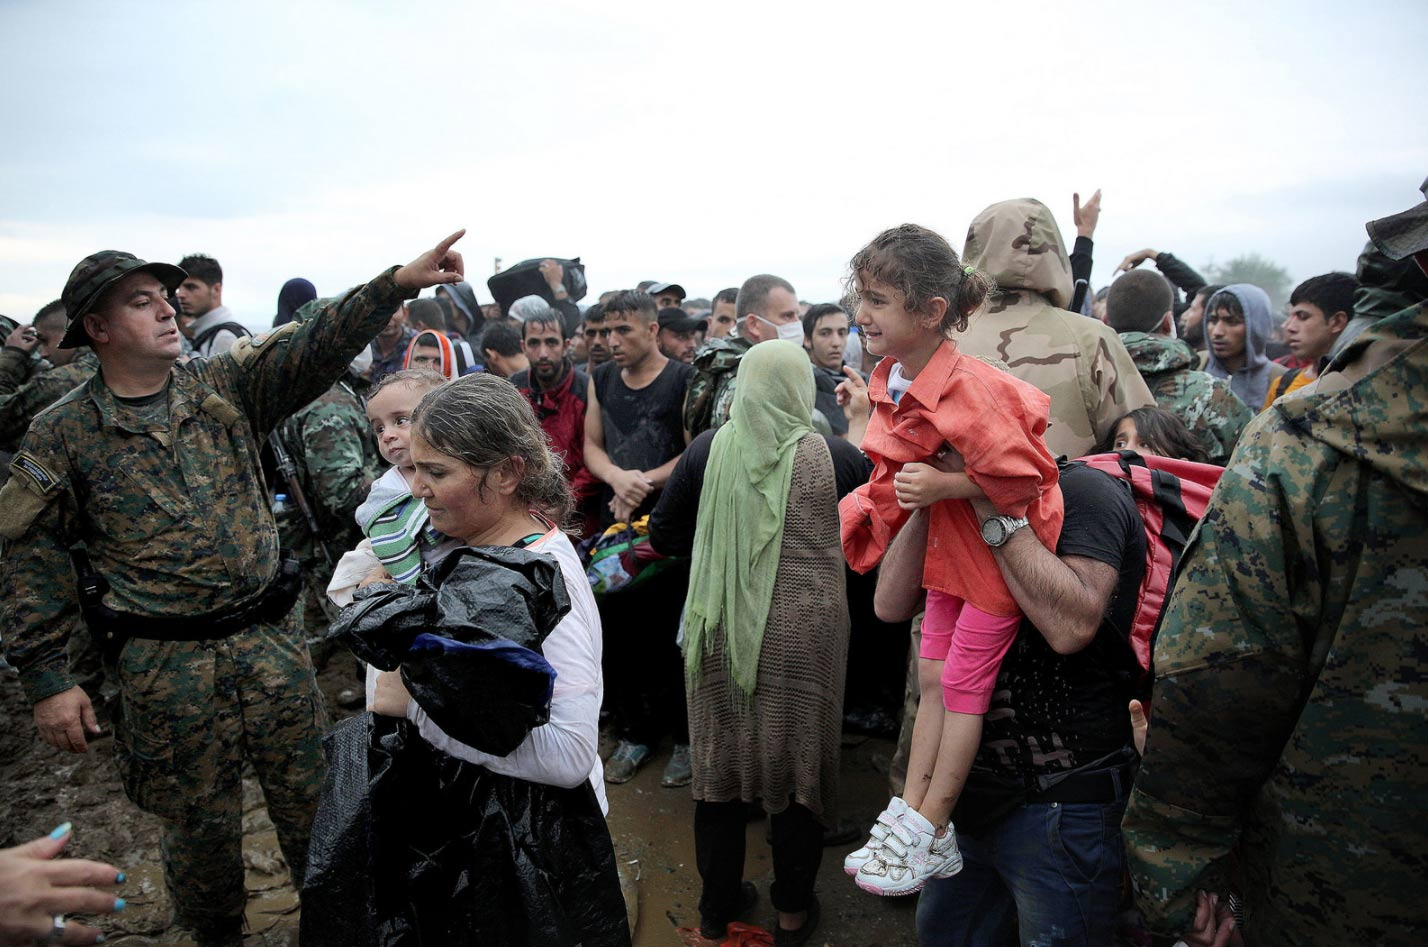 the role of aid agencies in providing services to refugees The agency says it currently supports more than five million palestinians in gaza, the west bank, jordan, syria and lebanon, including providing health care, education and social services.